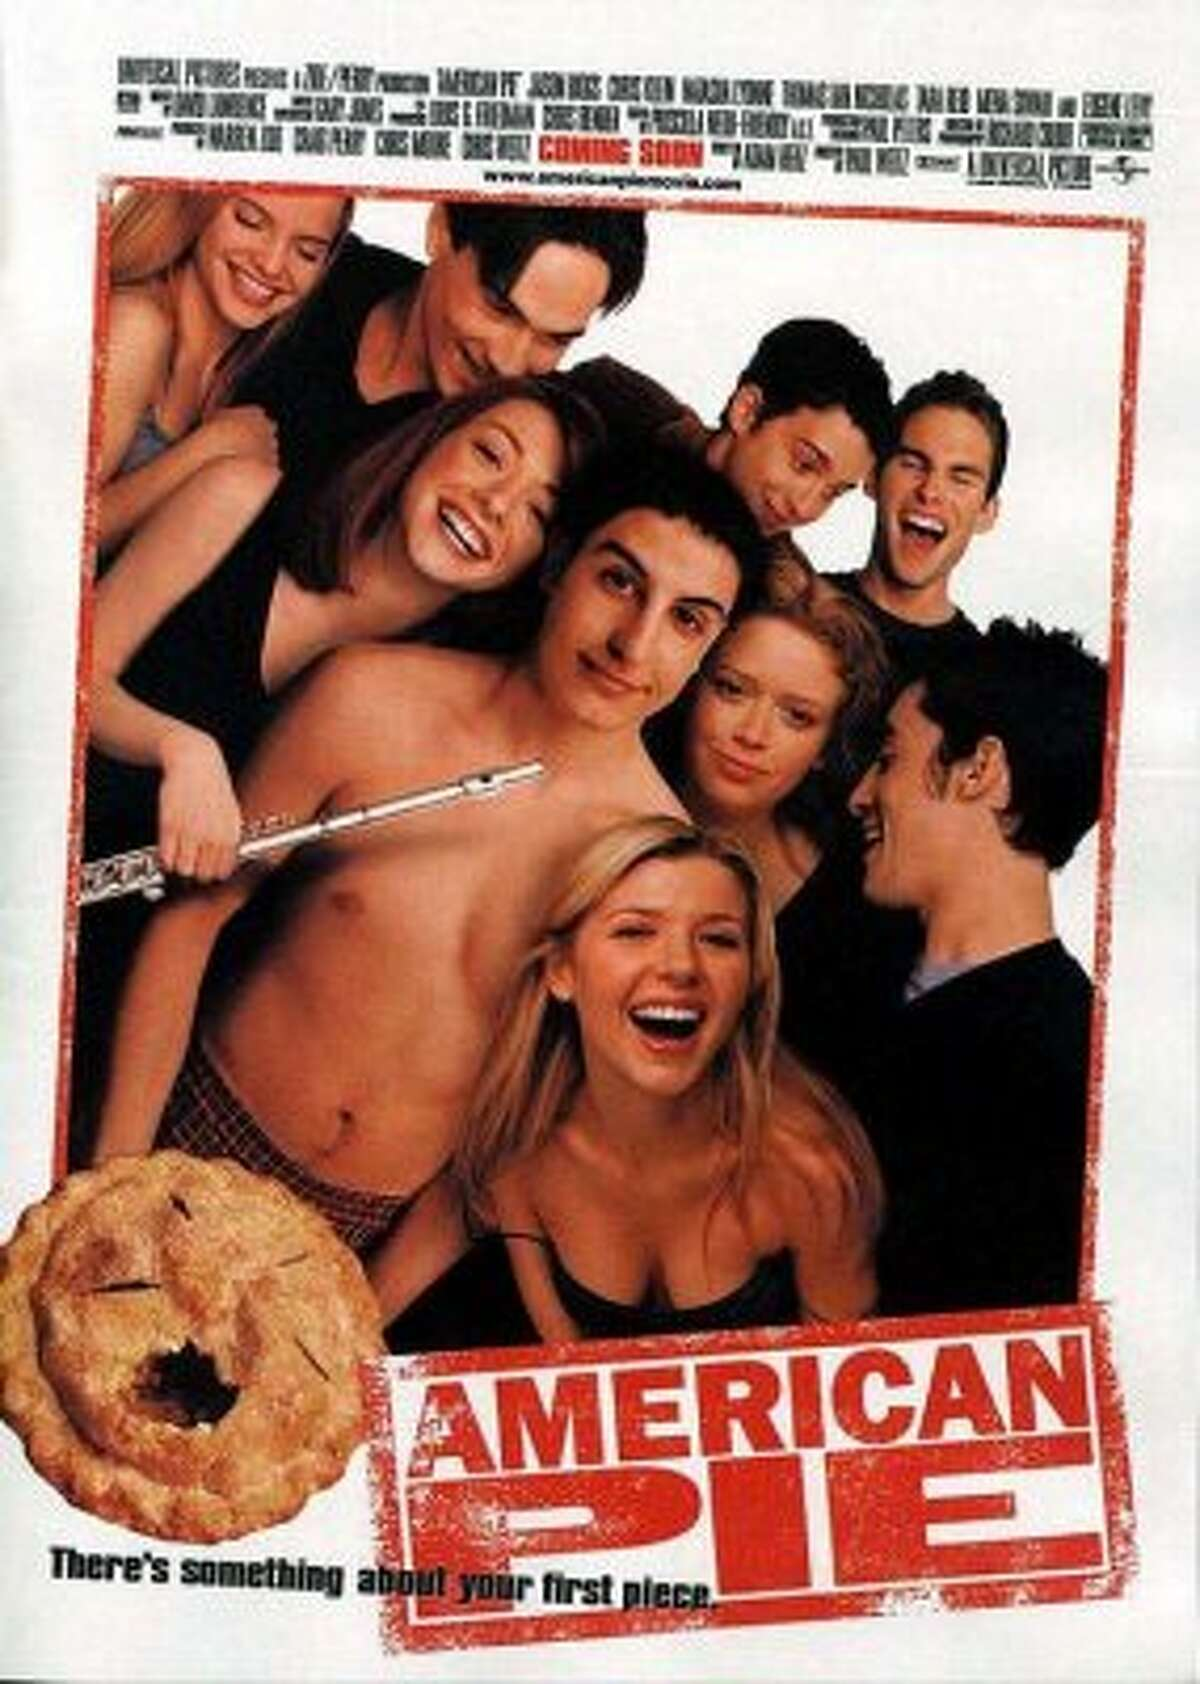 American Pie (1999) Leaving Netflix April 1 Four teenage boys enter a pact to lose their virginity by prom night.